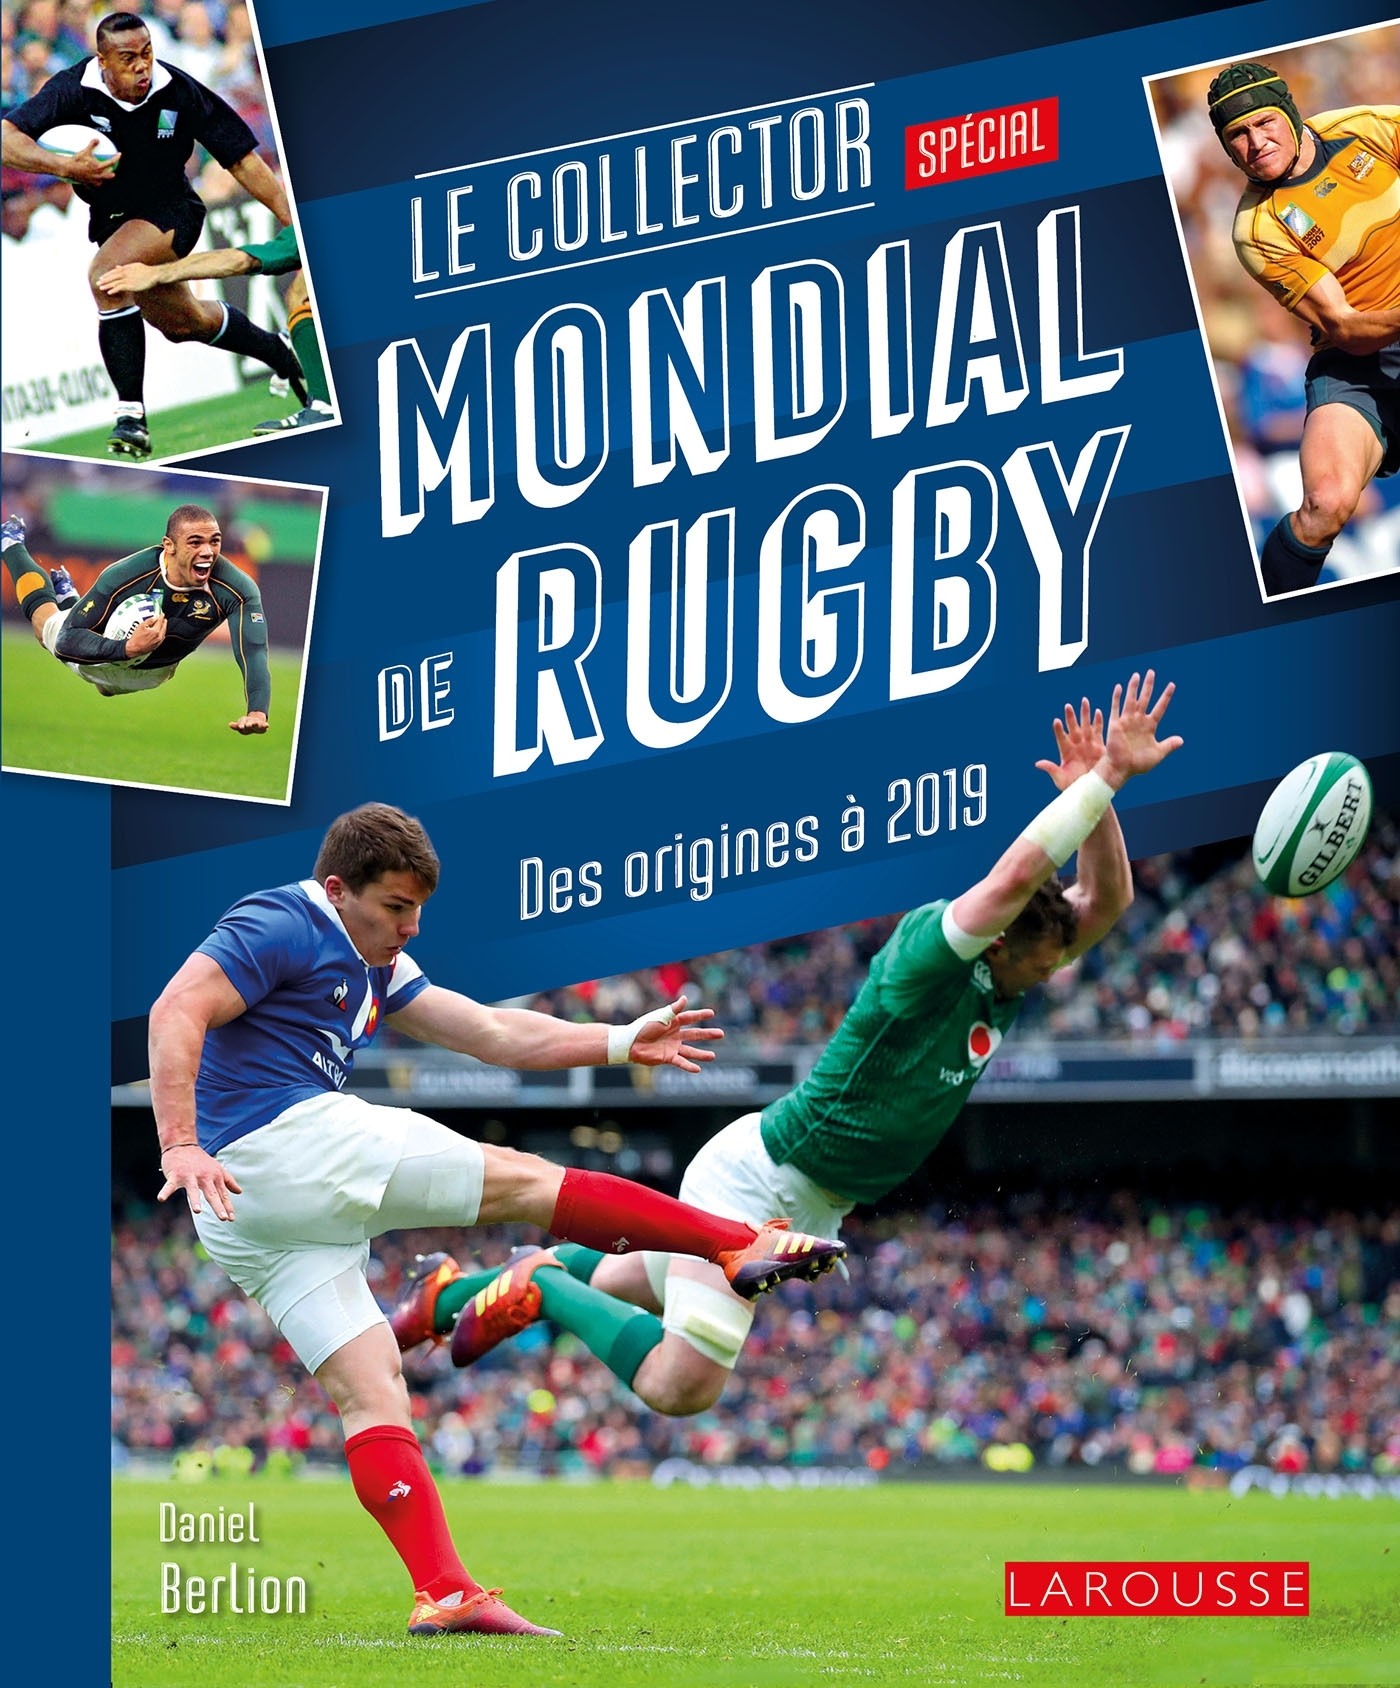 MONDIAL DE RUGBY - LE COLLECTOR - DES ORIGINES A 2019